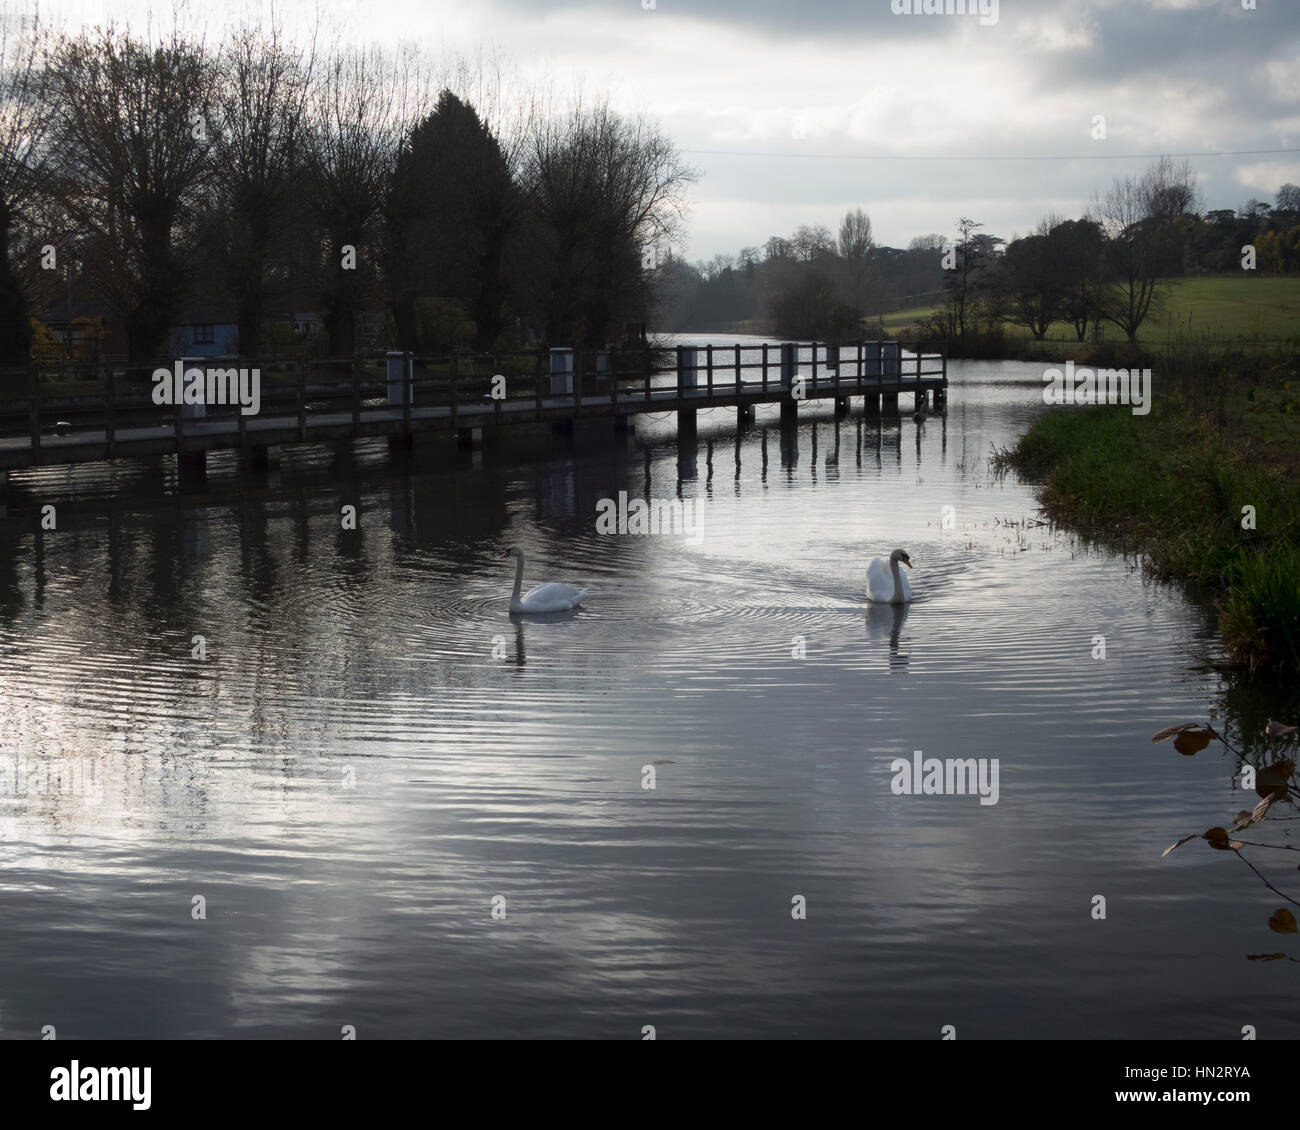 Swans on the River Thames Stock Photo